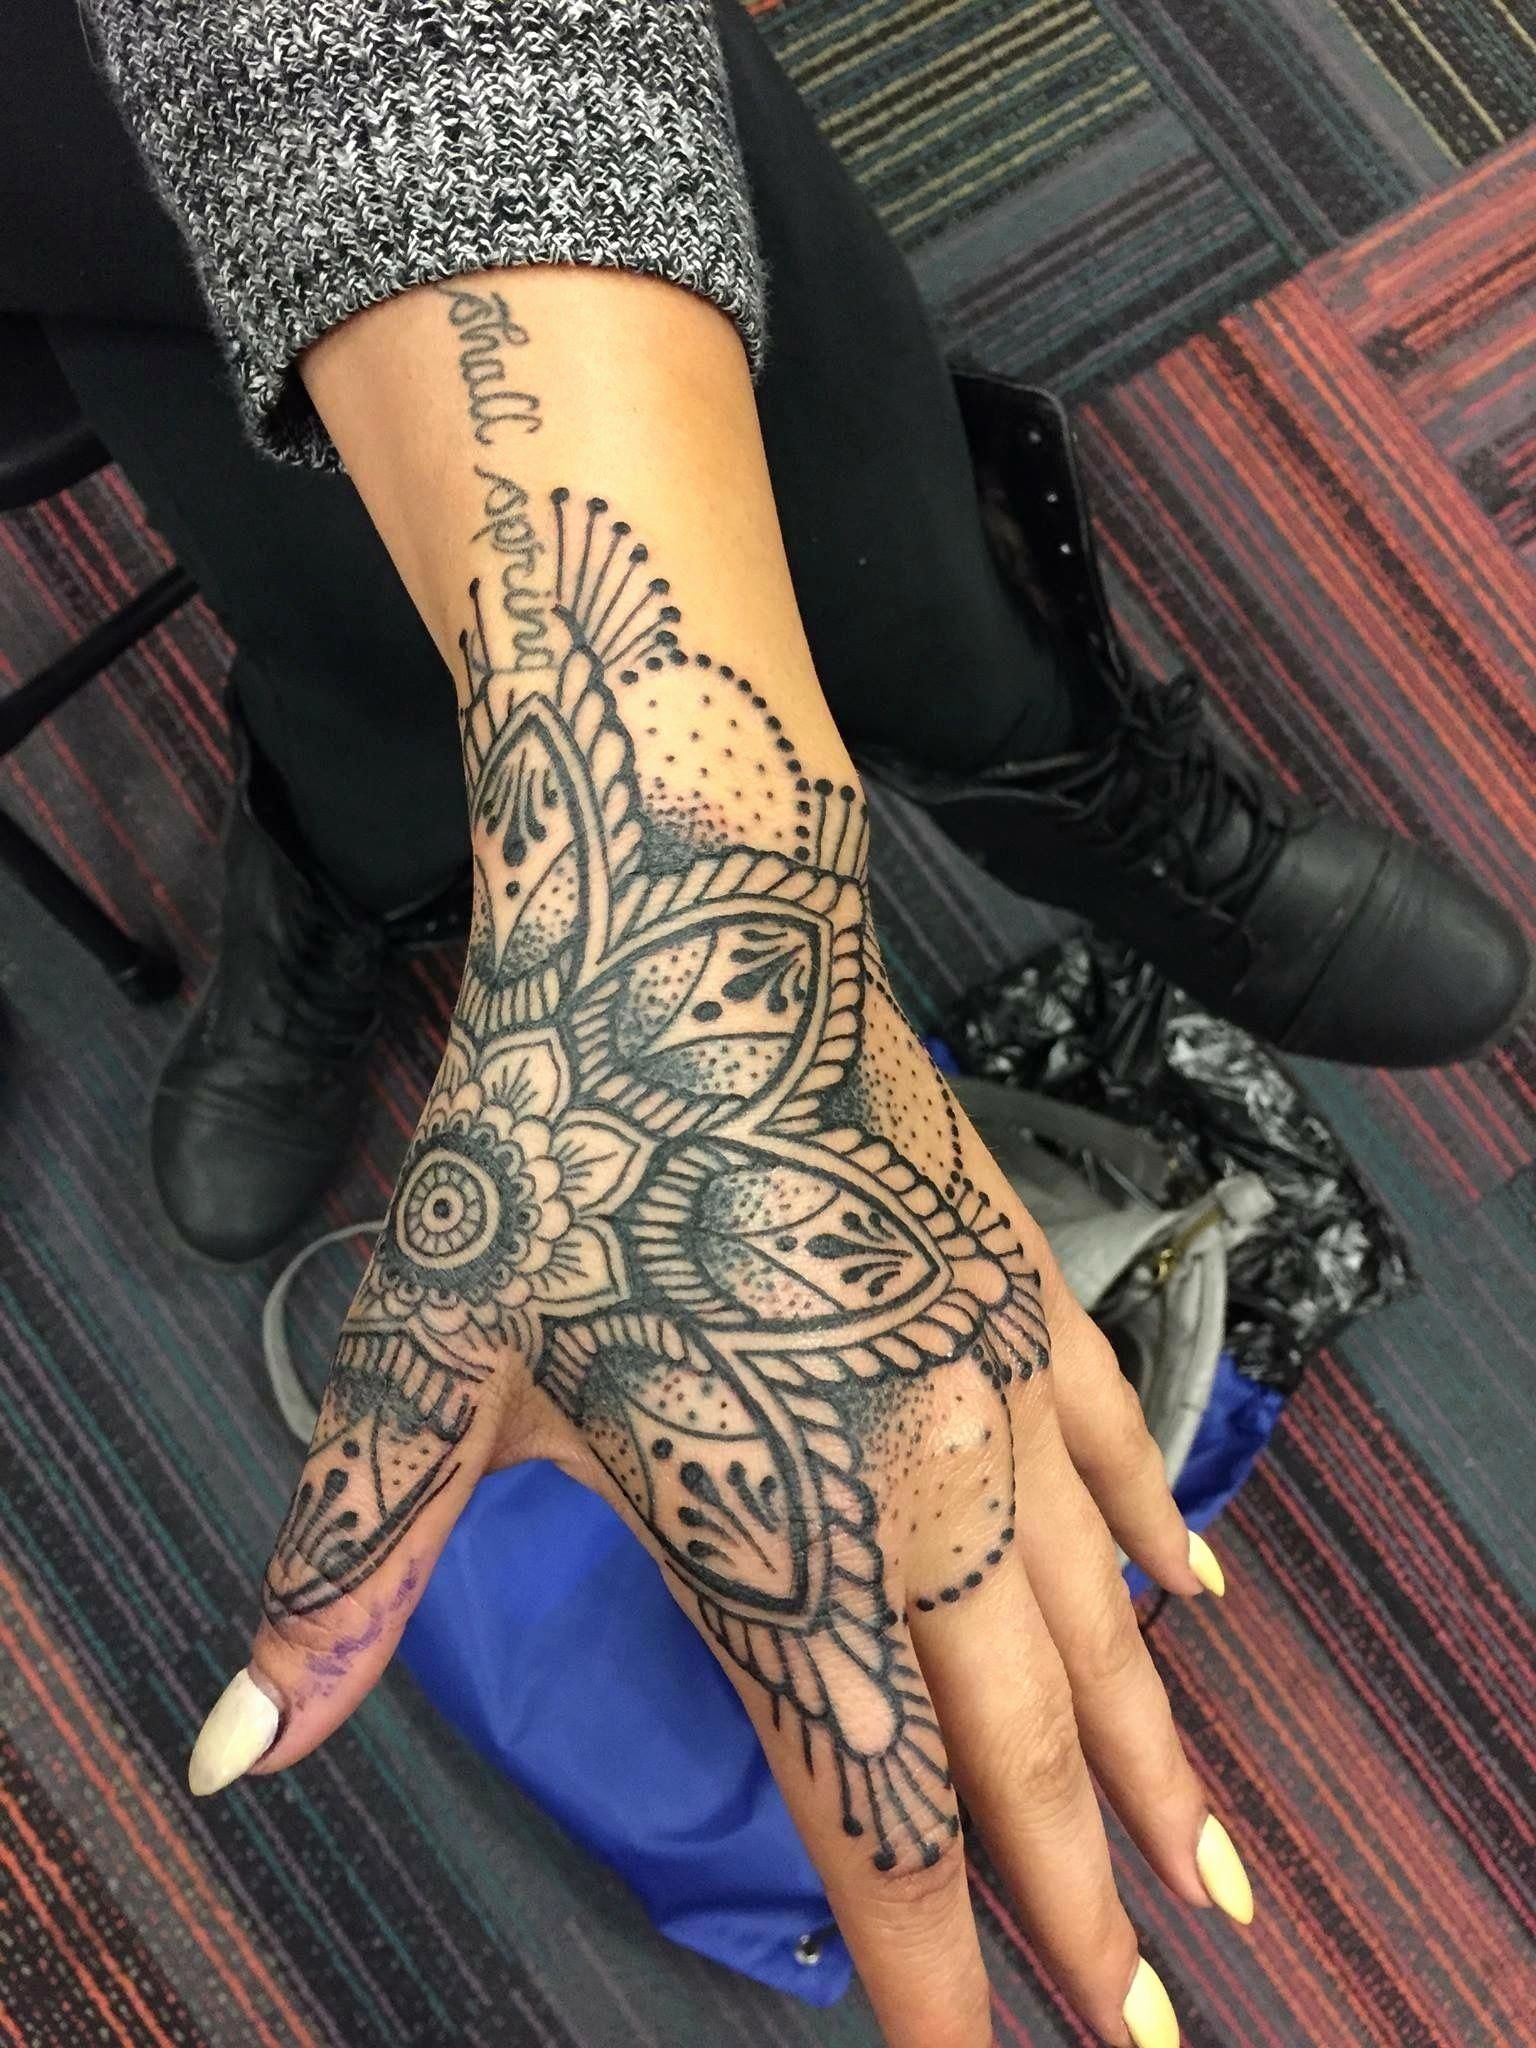 Tattoo Ideas For Hands Unique Mandala Arm Tattoo Mandalatattoo In 2020 Tribal Hand Tattoos Side Hand Tattoos Hand Tattoos For Women